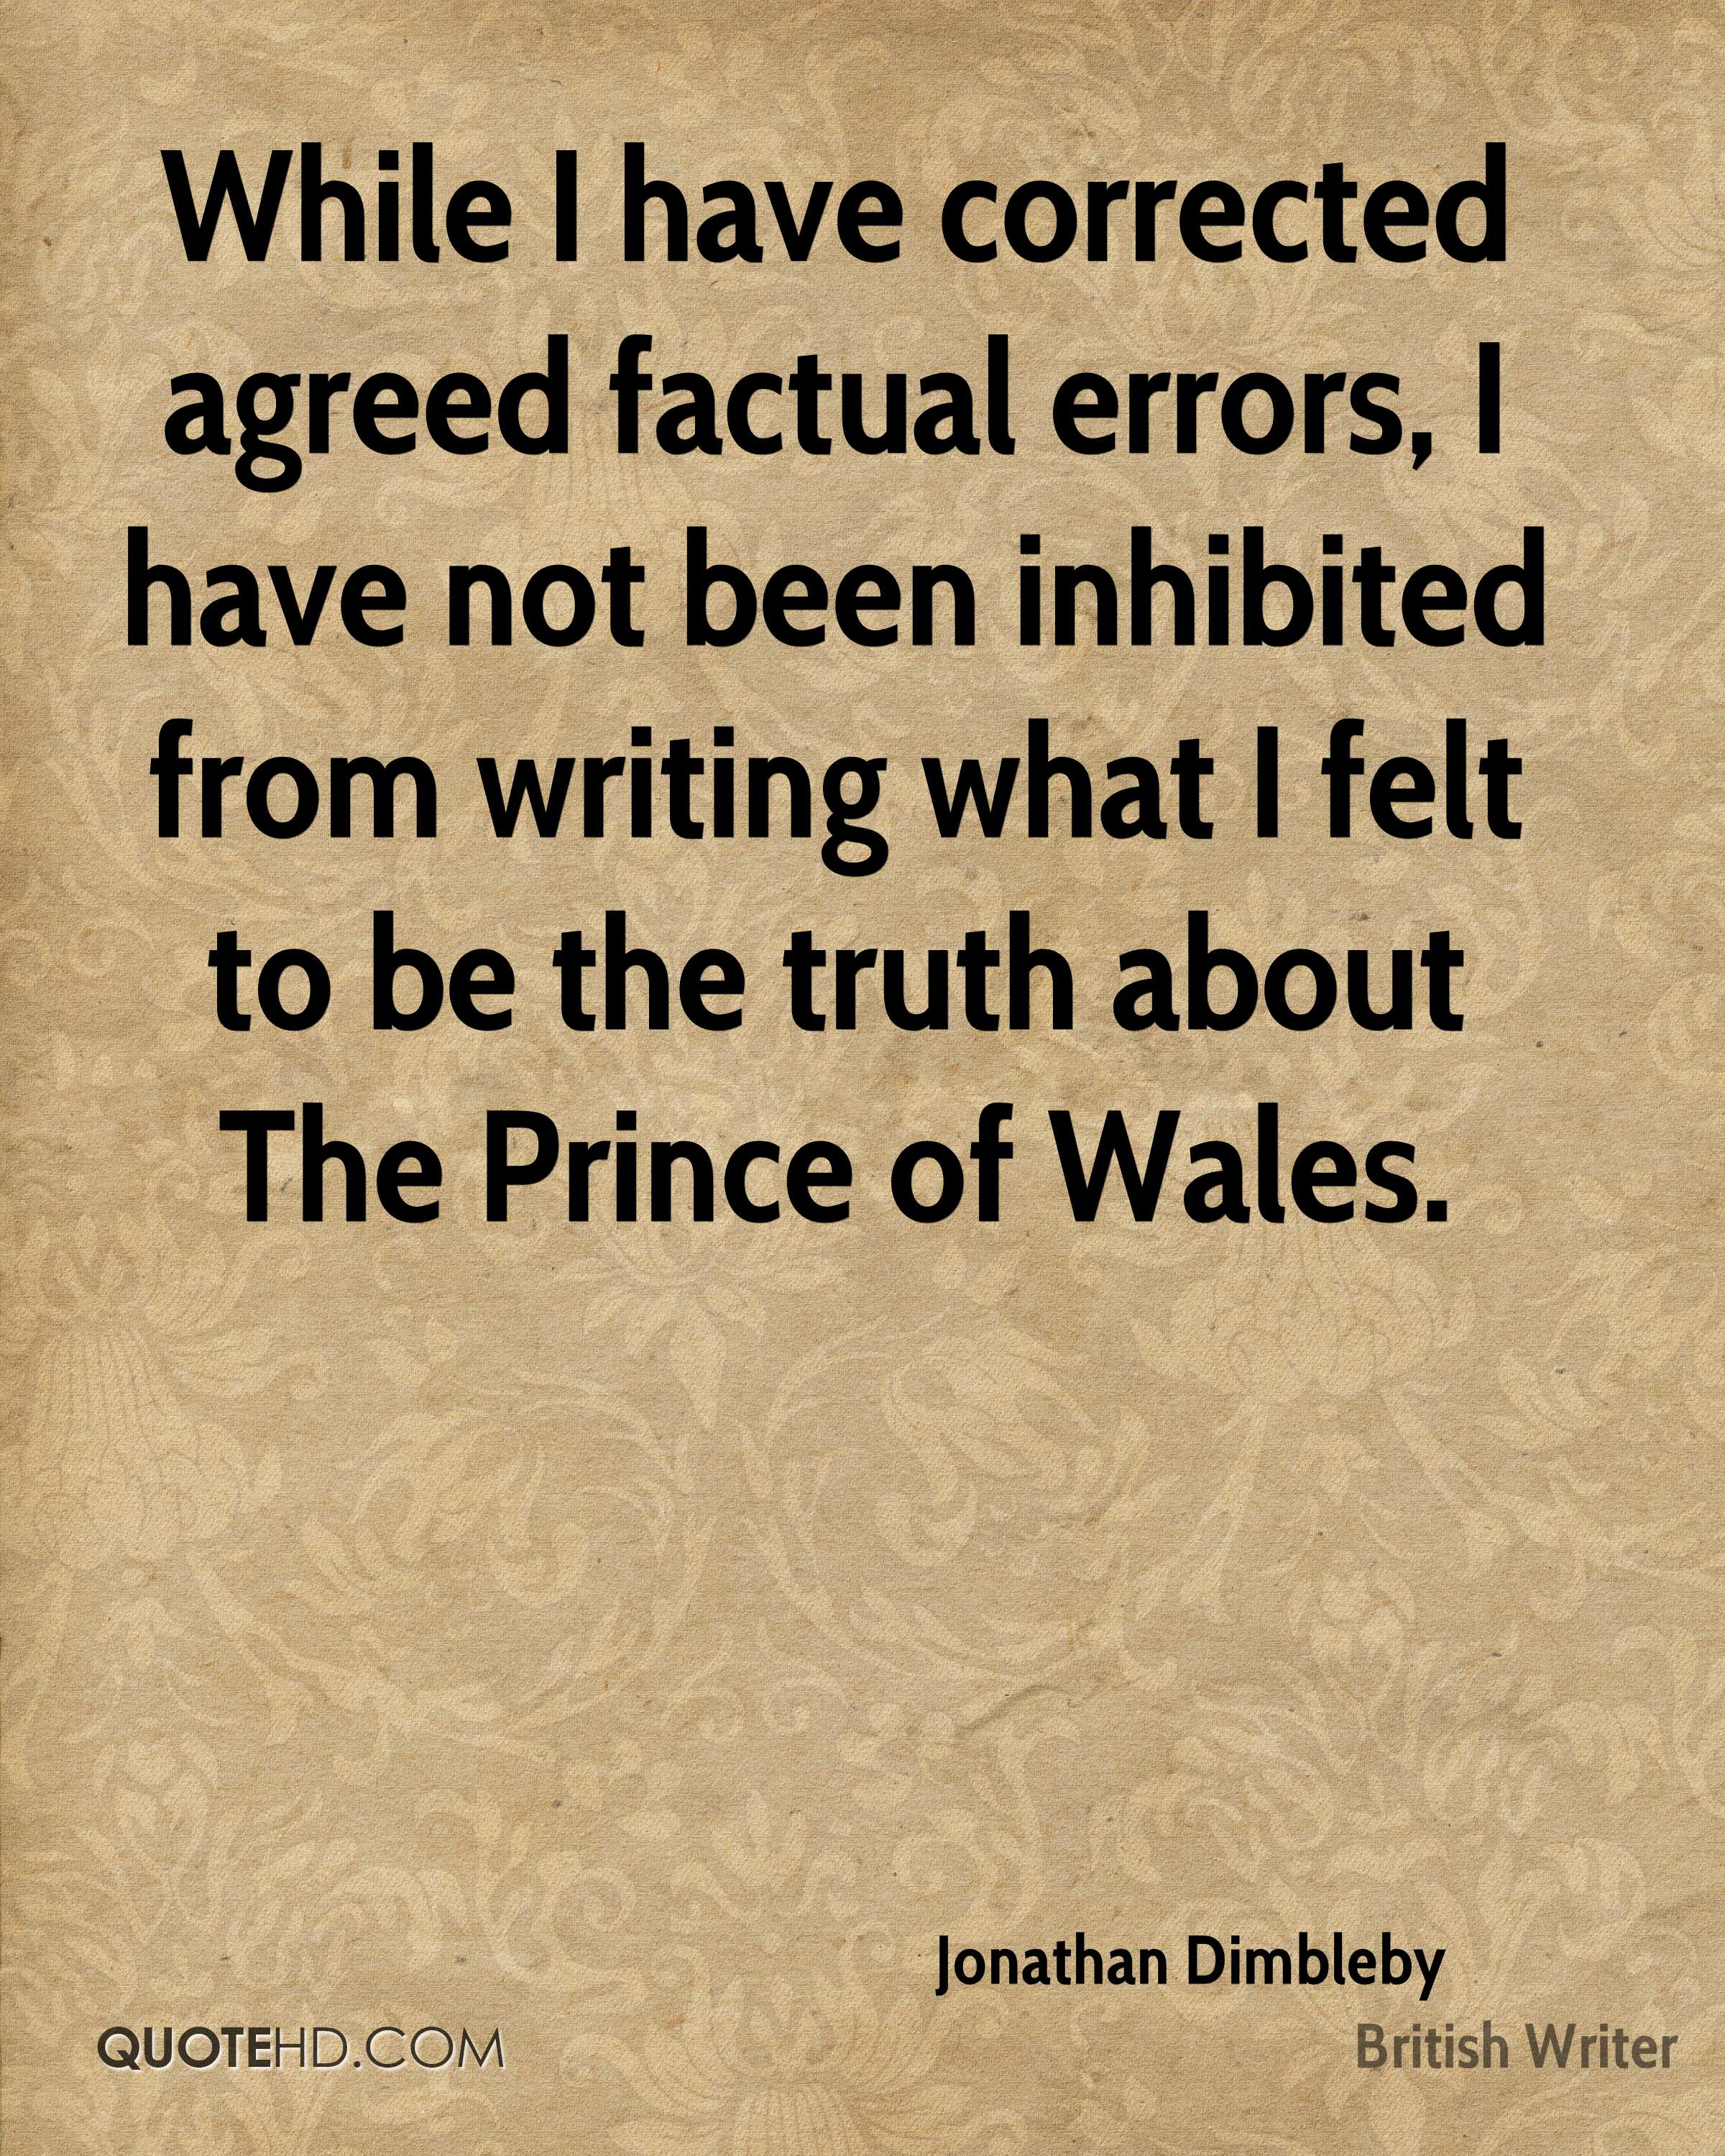 While I have corrected agreed factual errors, I have not been inhibited from writing what I felt to be the truth about The Prince of Wales.